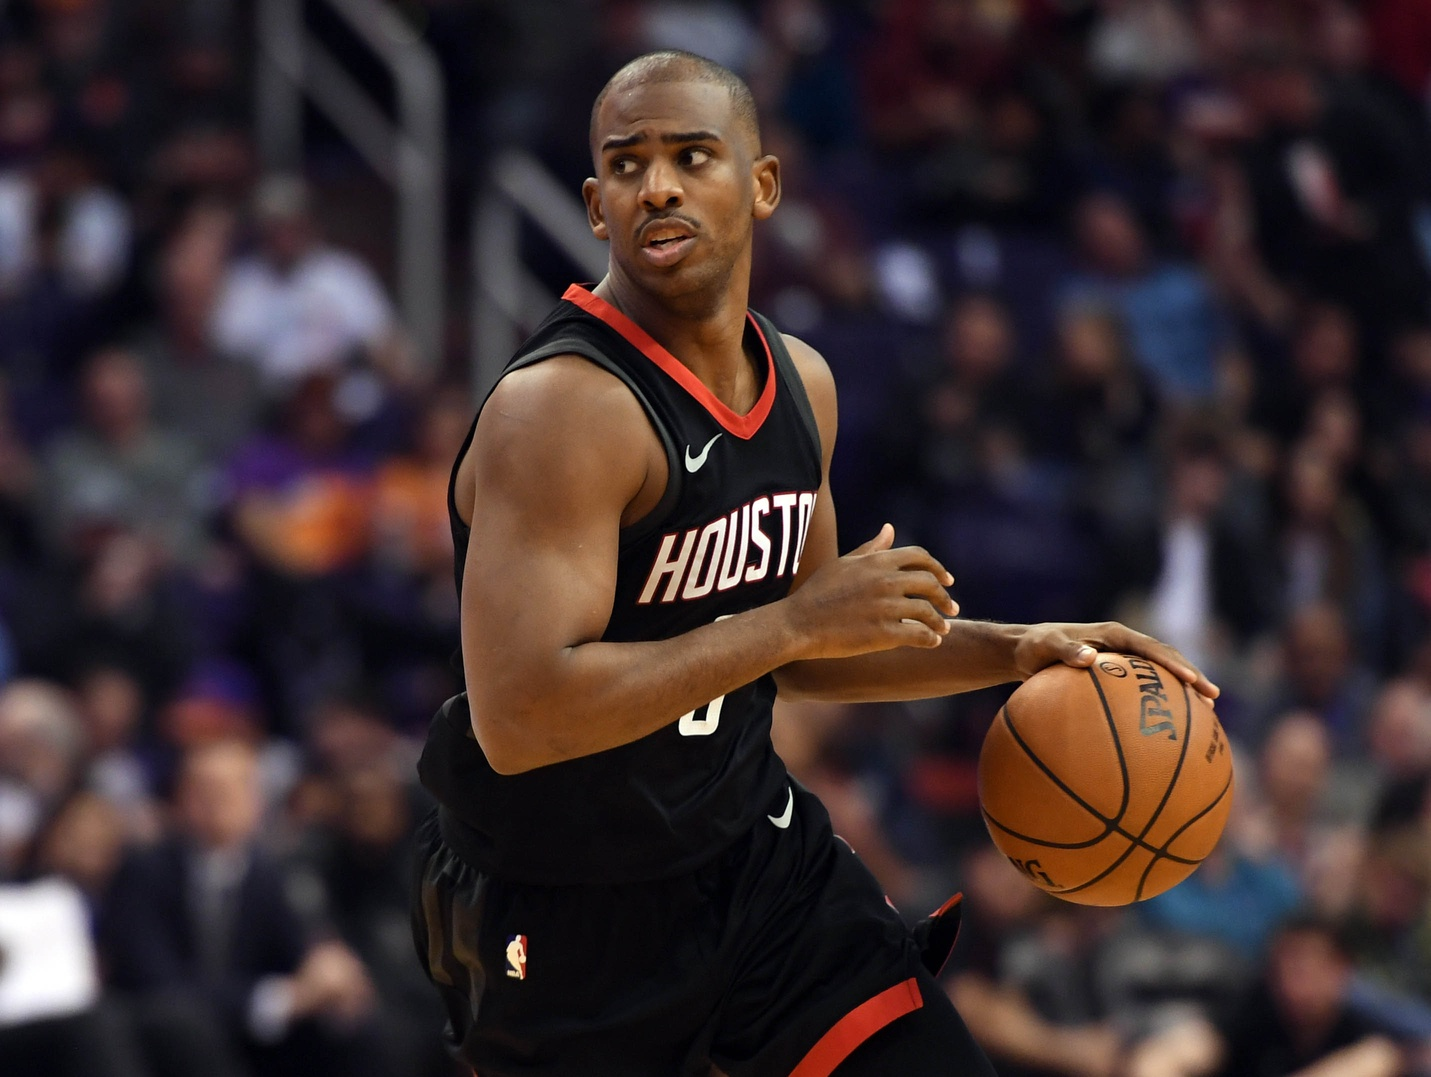 CP3's Return to Lob City: Chris Paul Faces the Clippers For the First Time